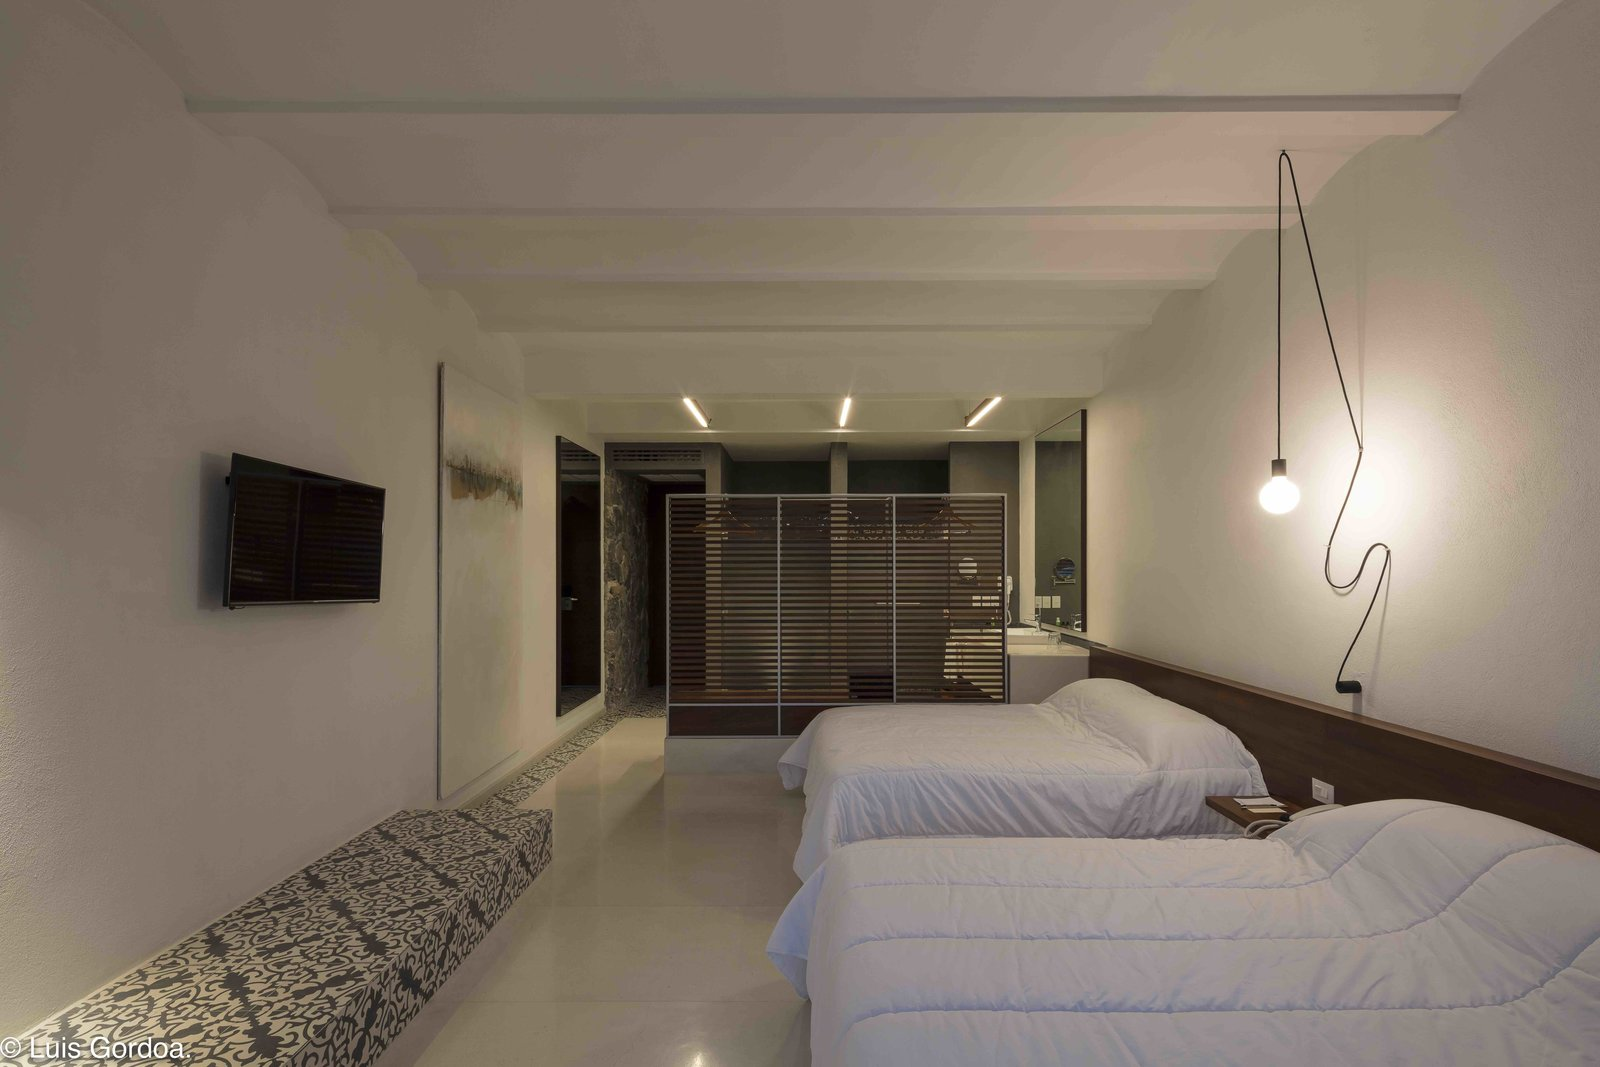 A New Hotel in Morelos Combines Local Mexican Elements With Brutalist Architecture - Photo 10 of 12